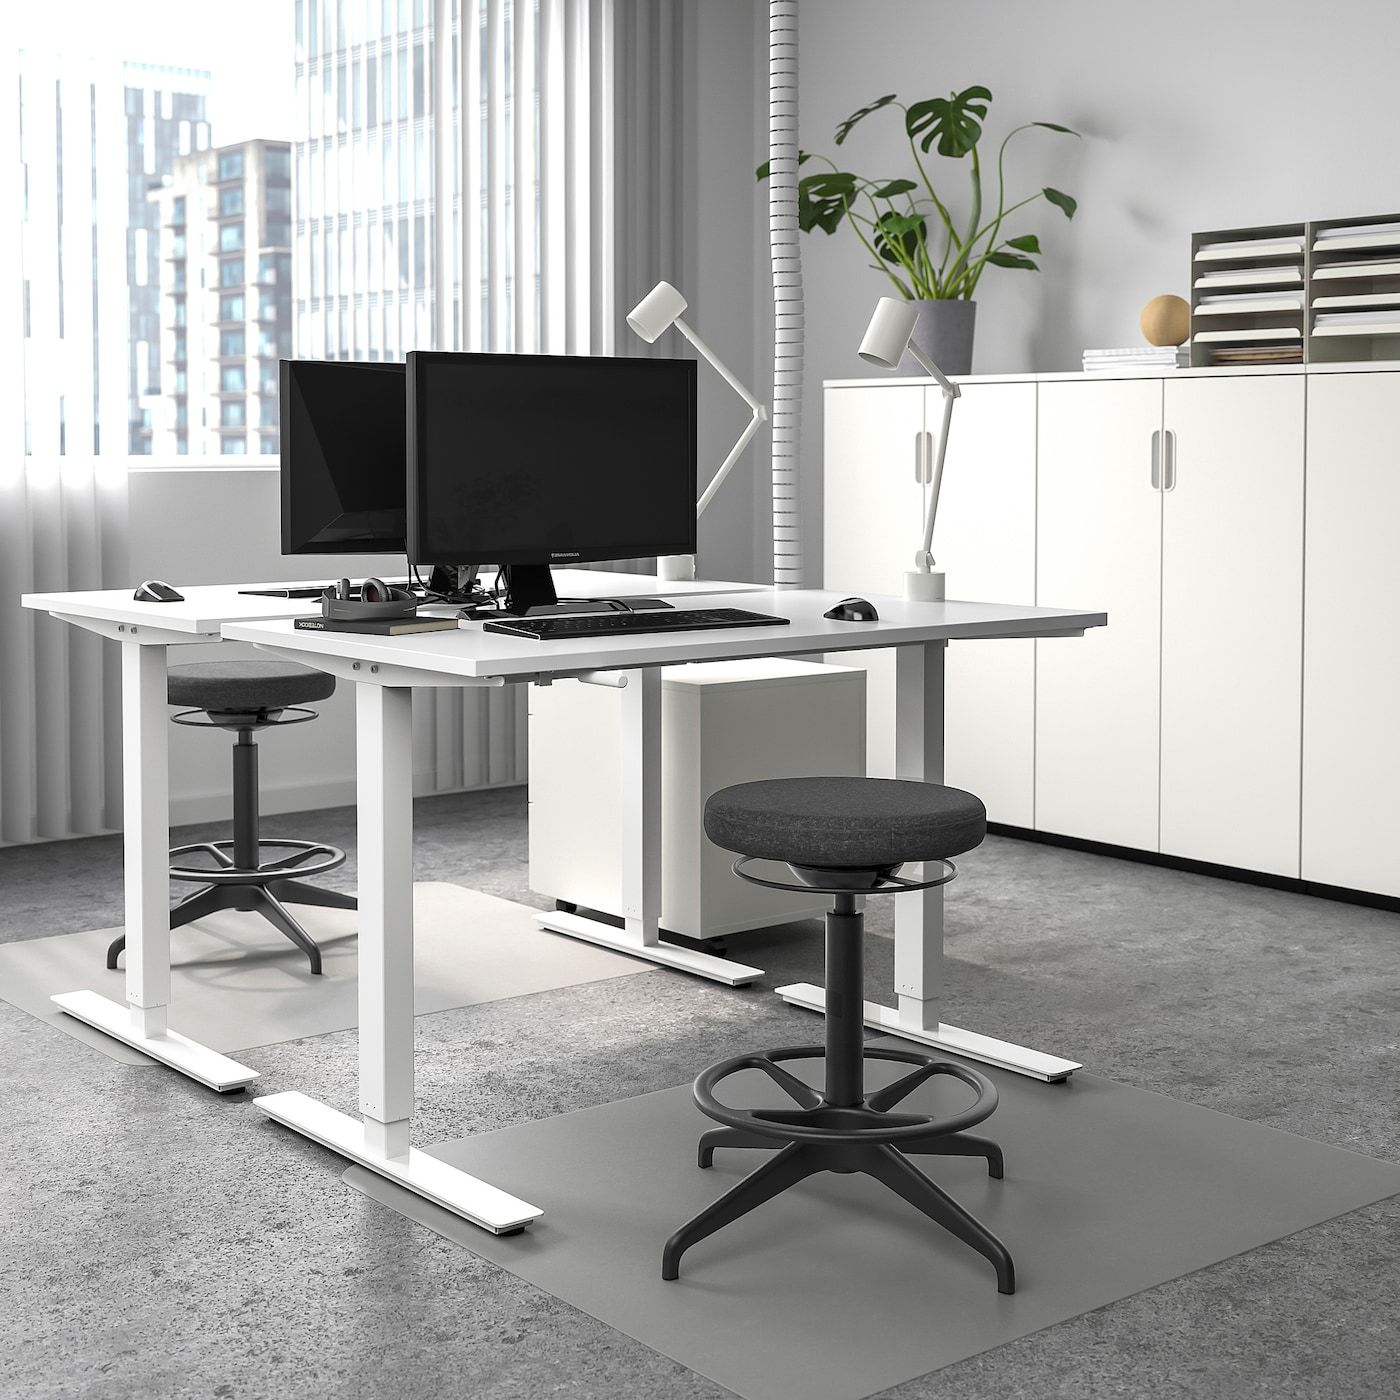 Skarsta Desk Sit Stand White Ikea In 2020 Ikea Standing Desk Sit Stand Desk Home Desk